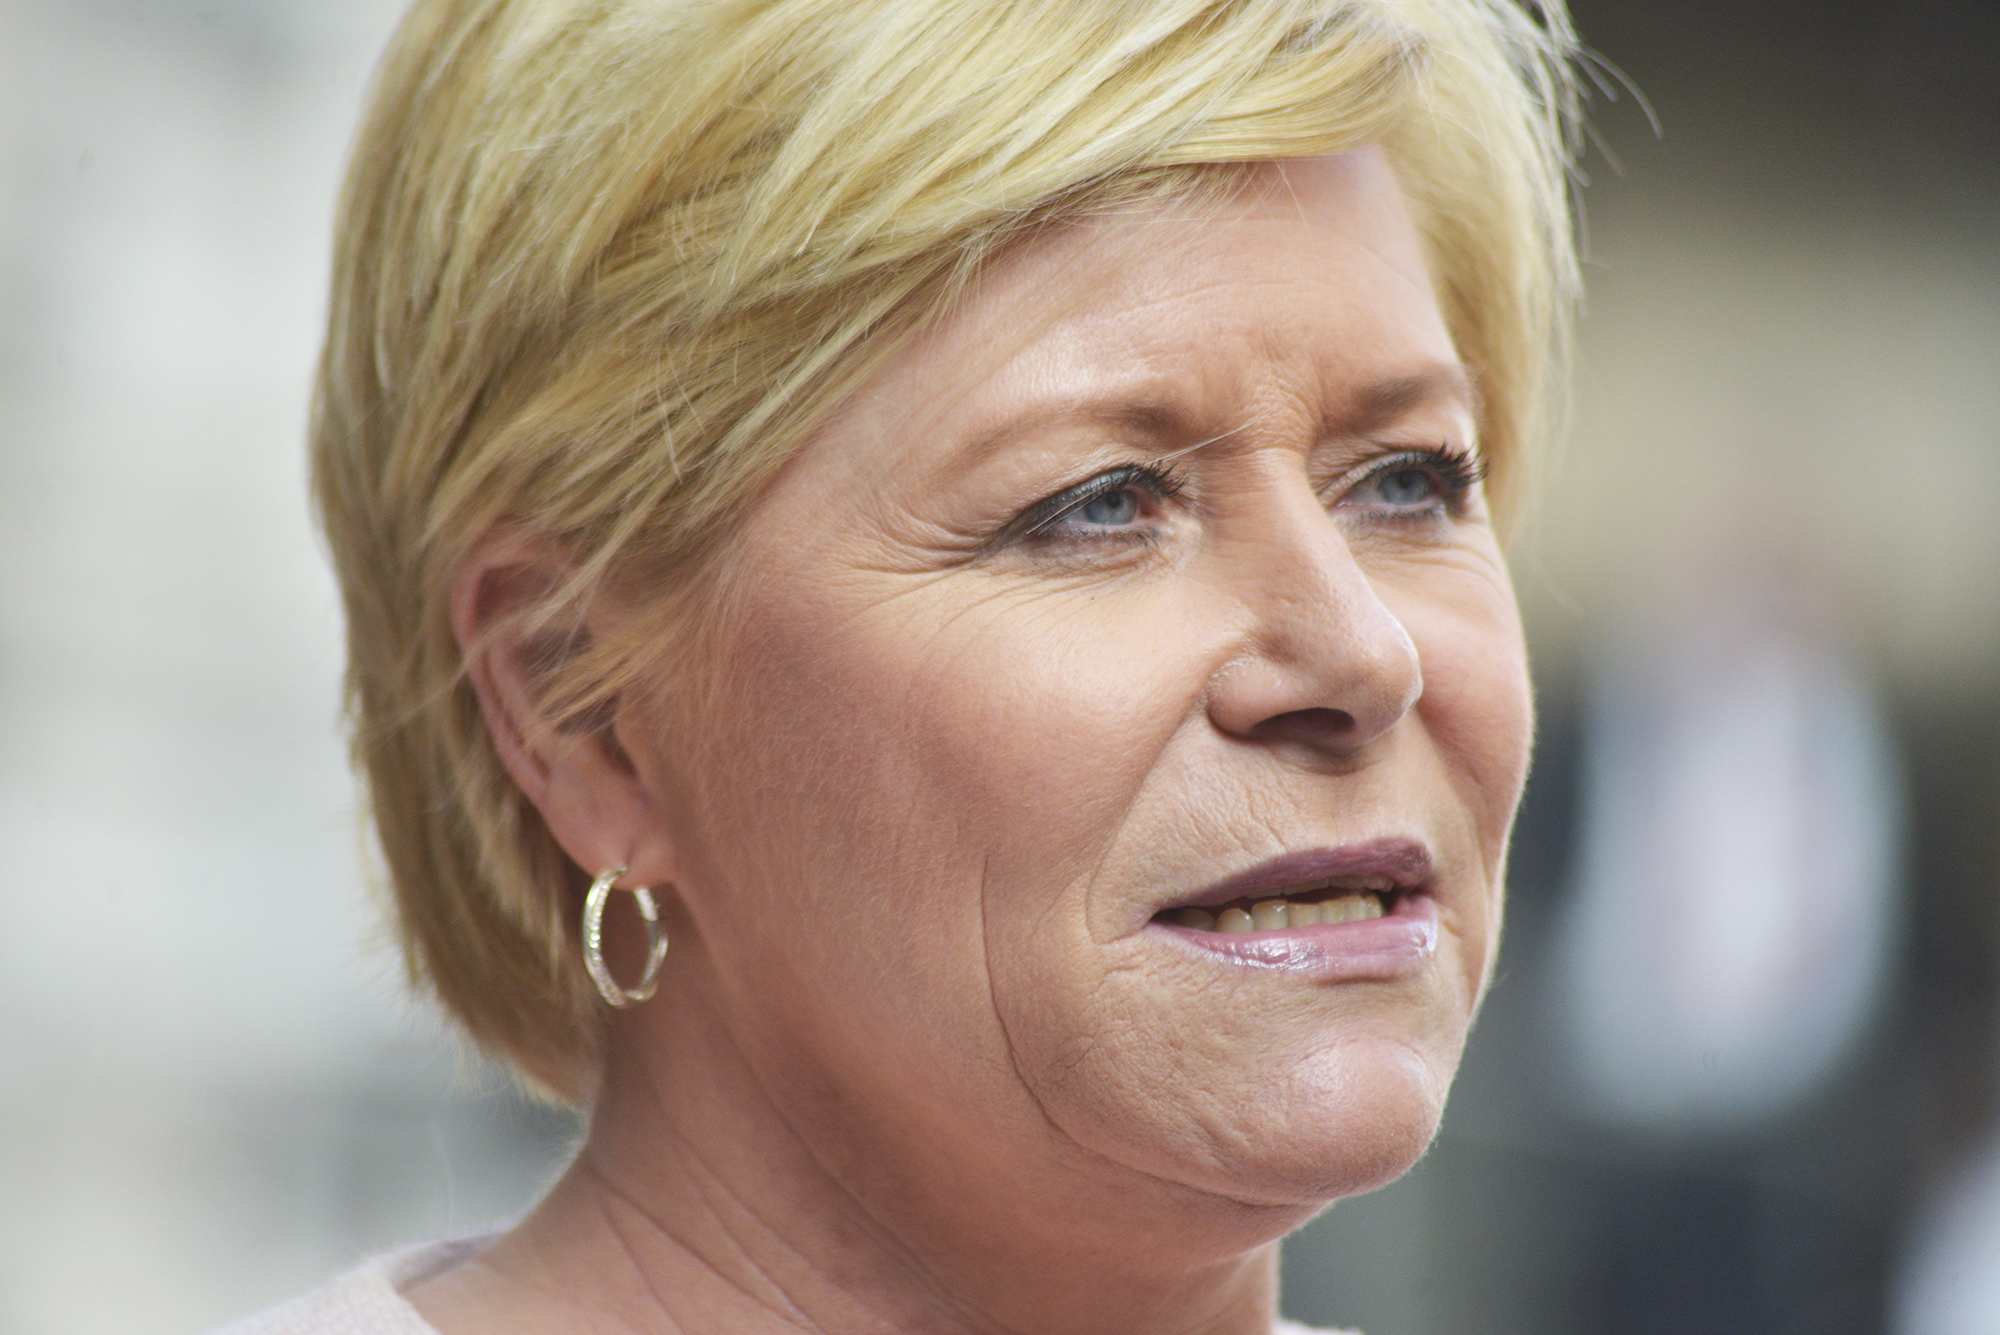 Siv Jensen, a politician in the Norwegian Parliament and leader of the Progress Party, in 2016.